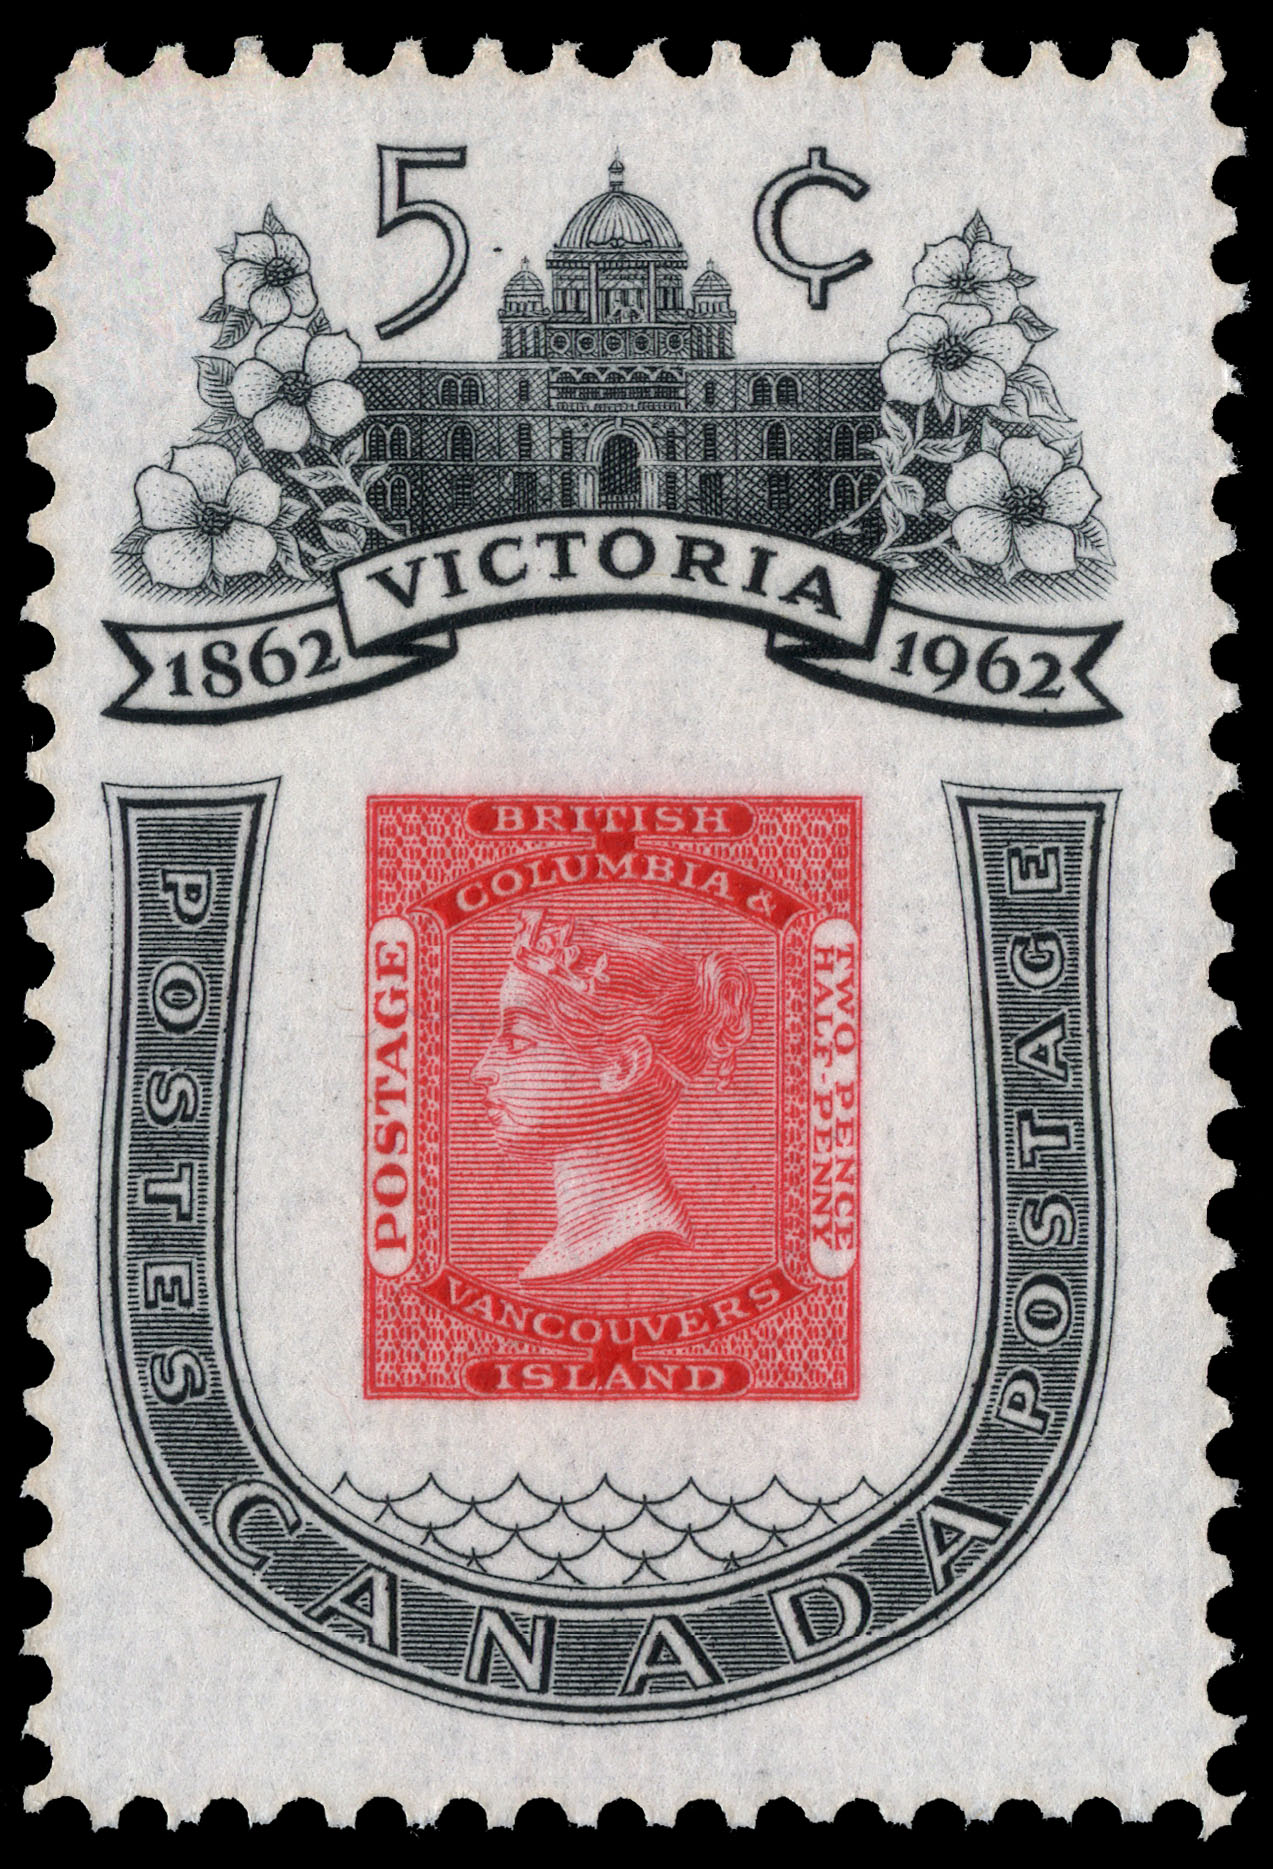 Victoria, 1862-1962 Canada Postage Stamp